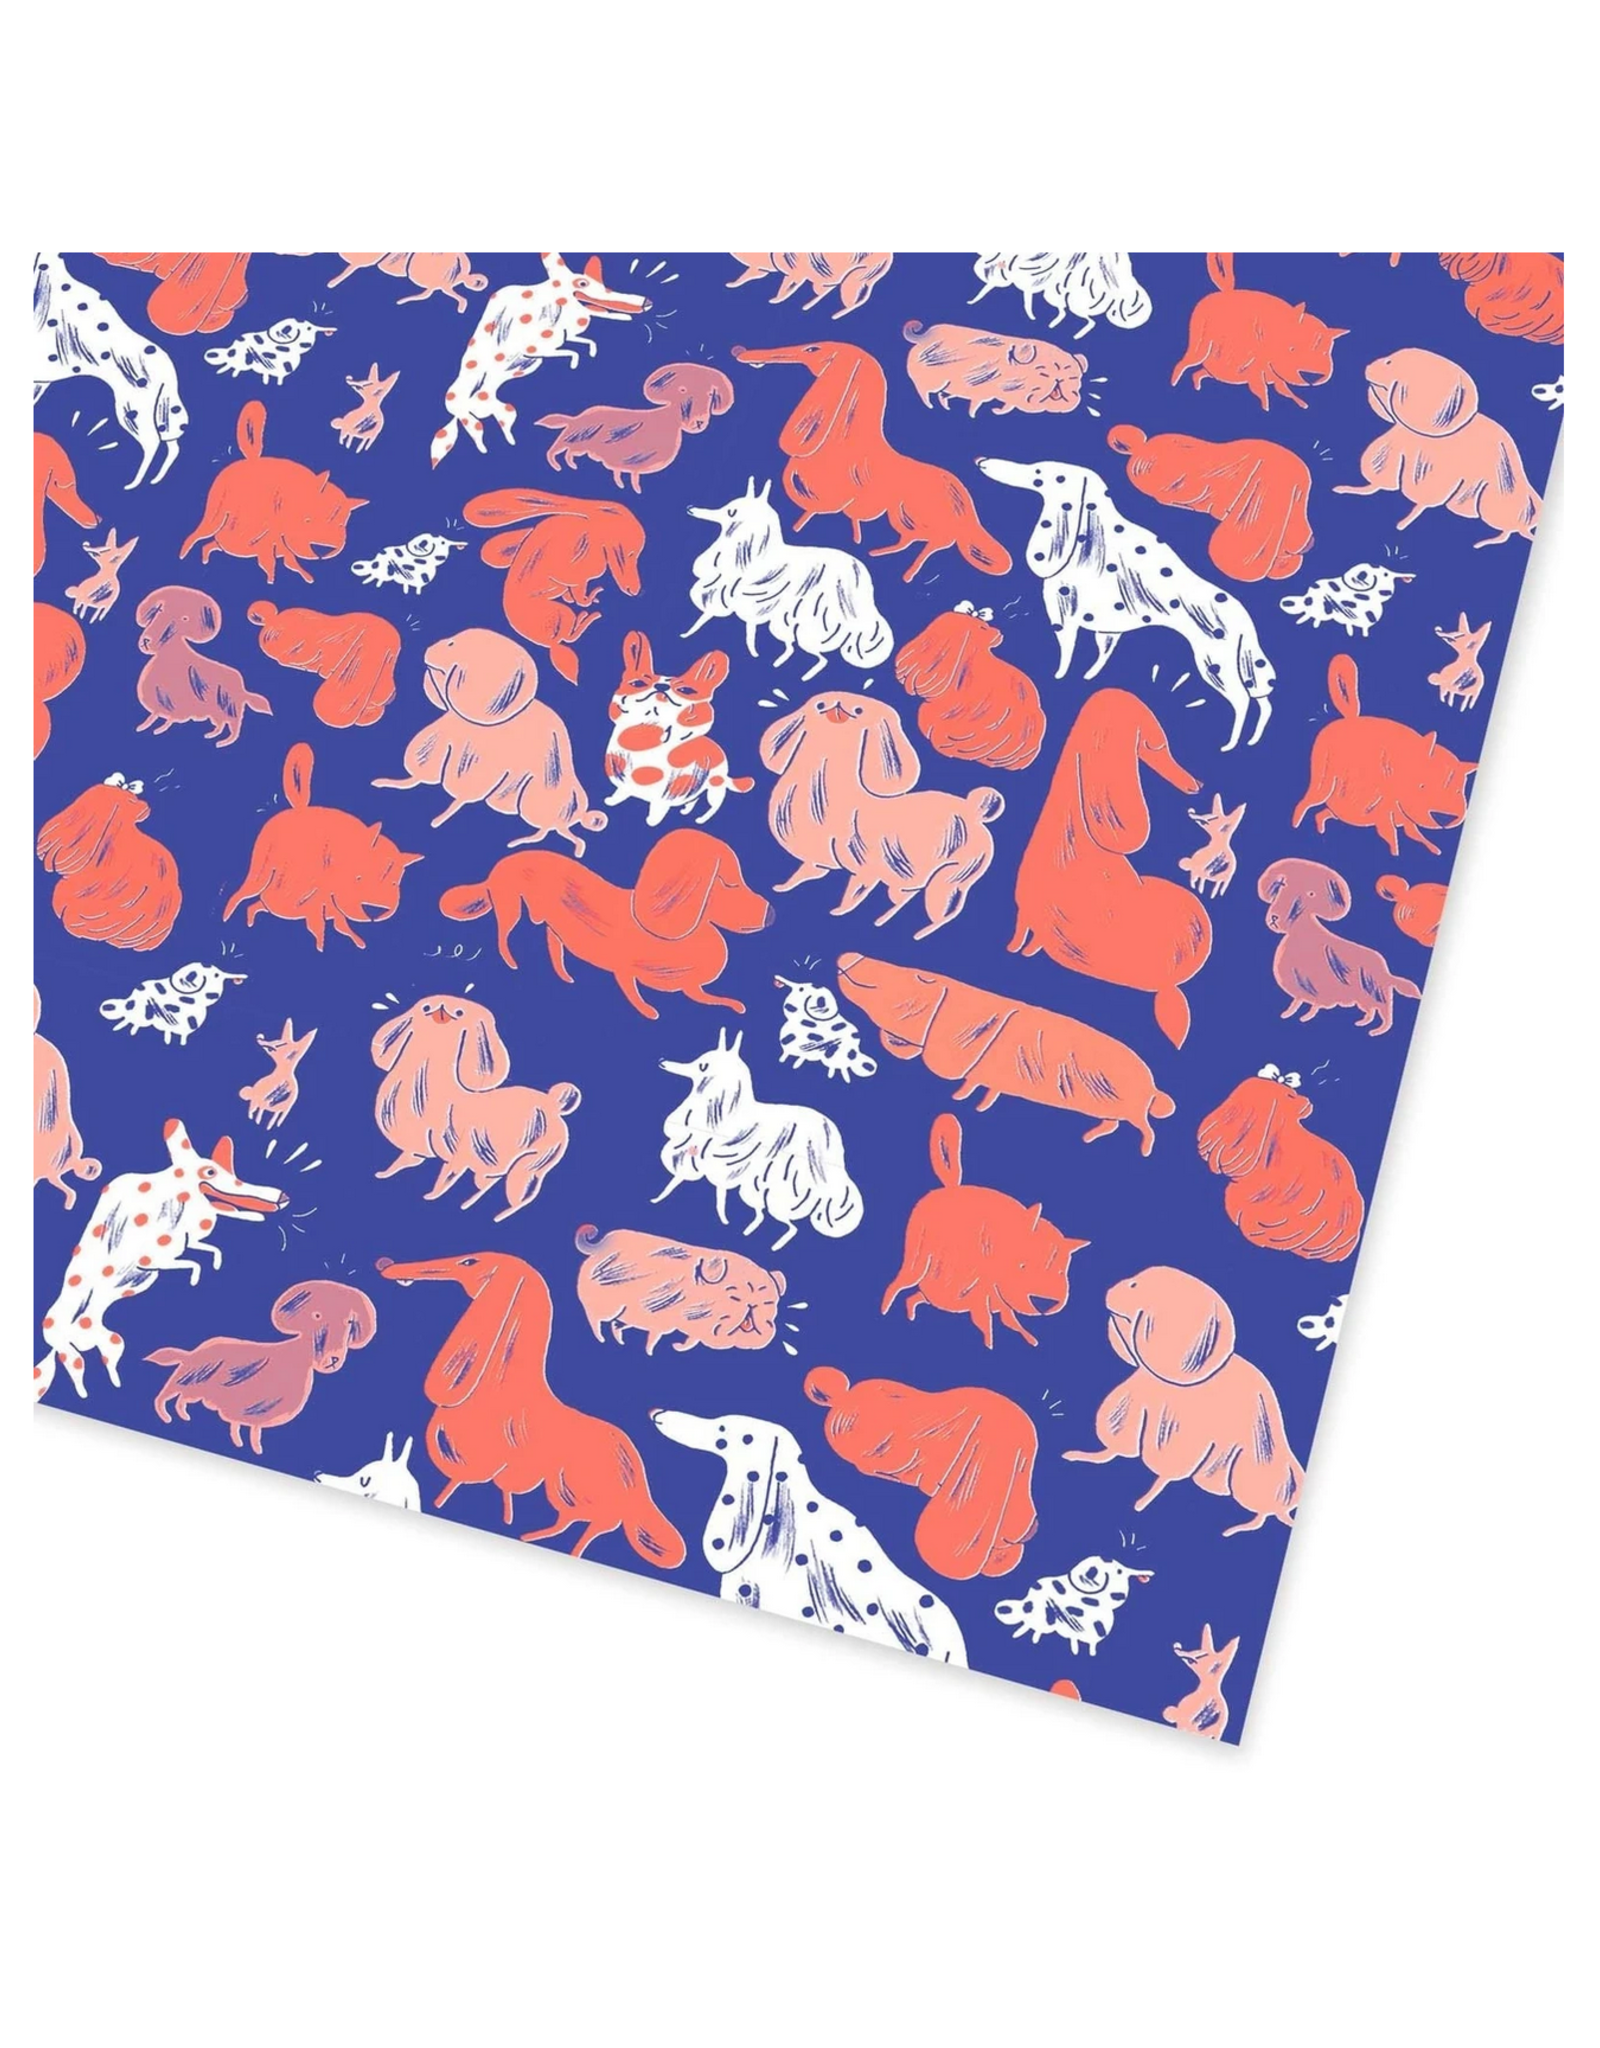 Dogs Flat Gift Wrap Sheet